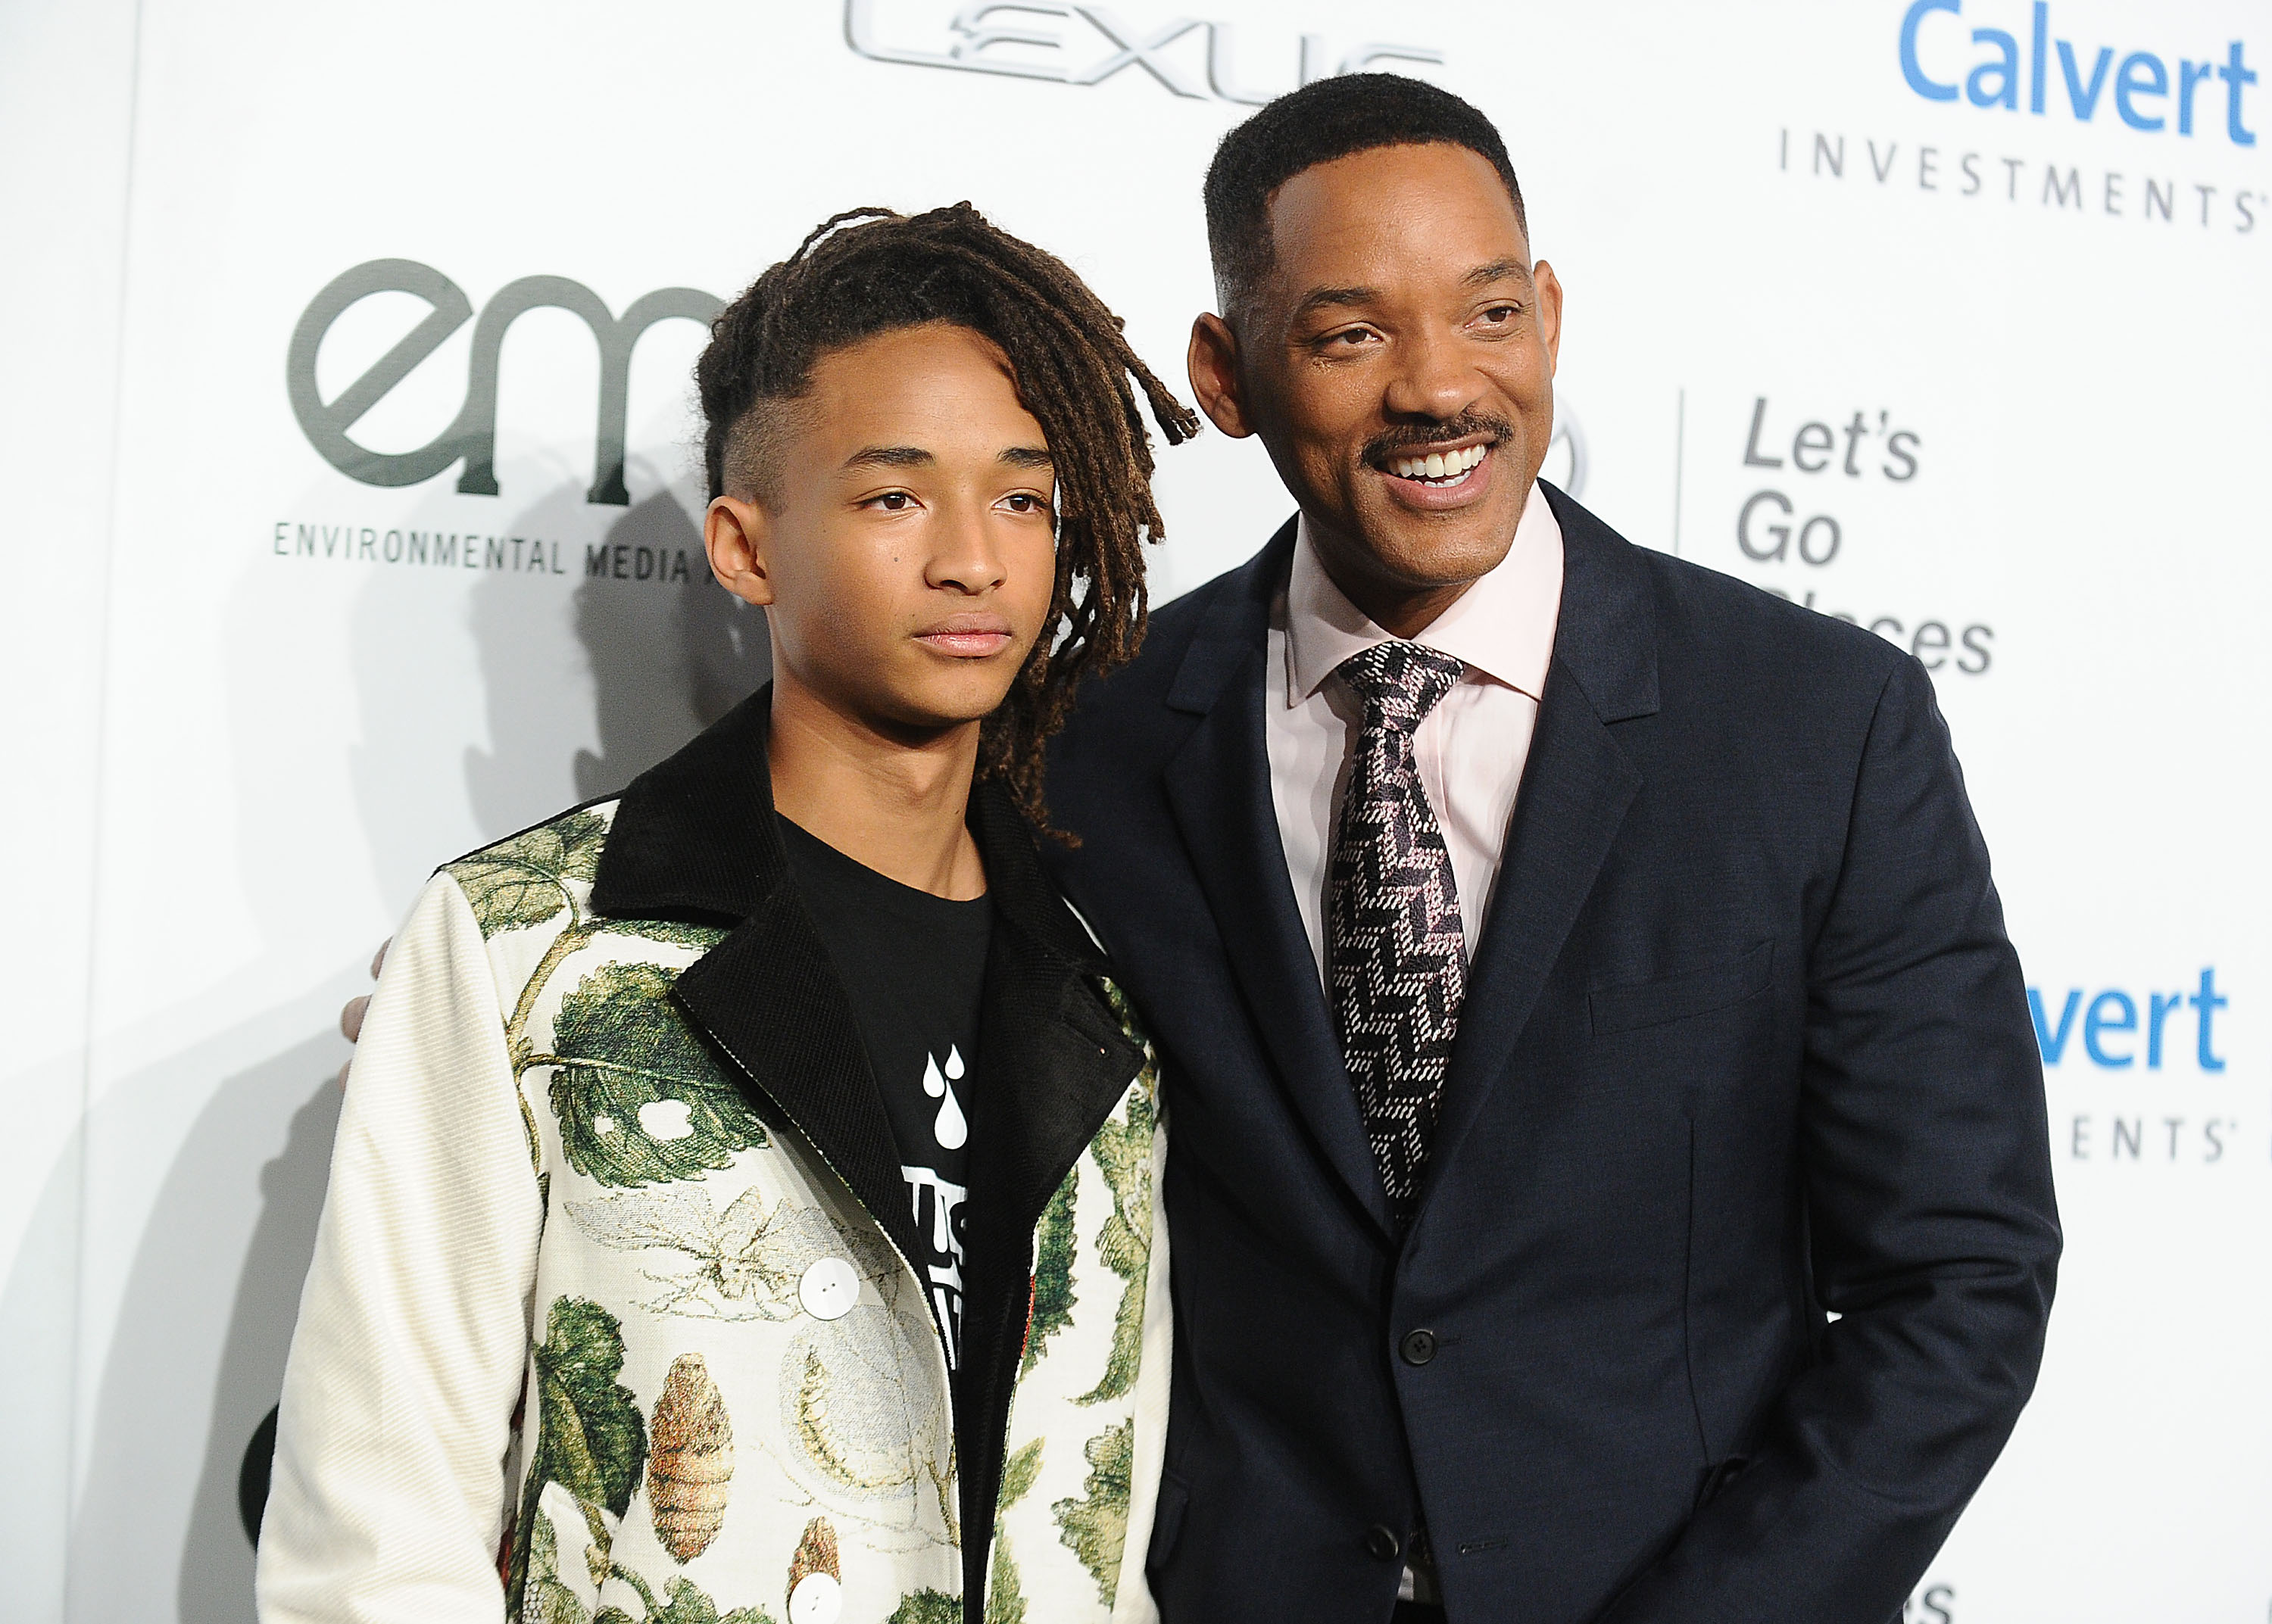 Will Smith Trolls Jaden With Music Video Parody on Instagram | Time